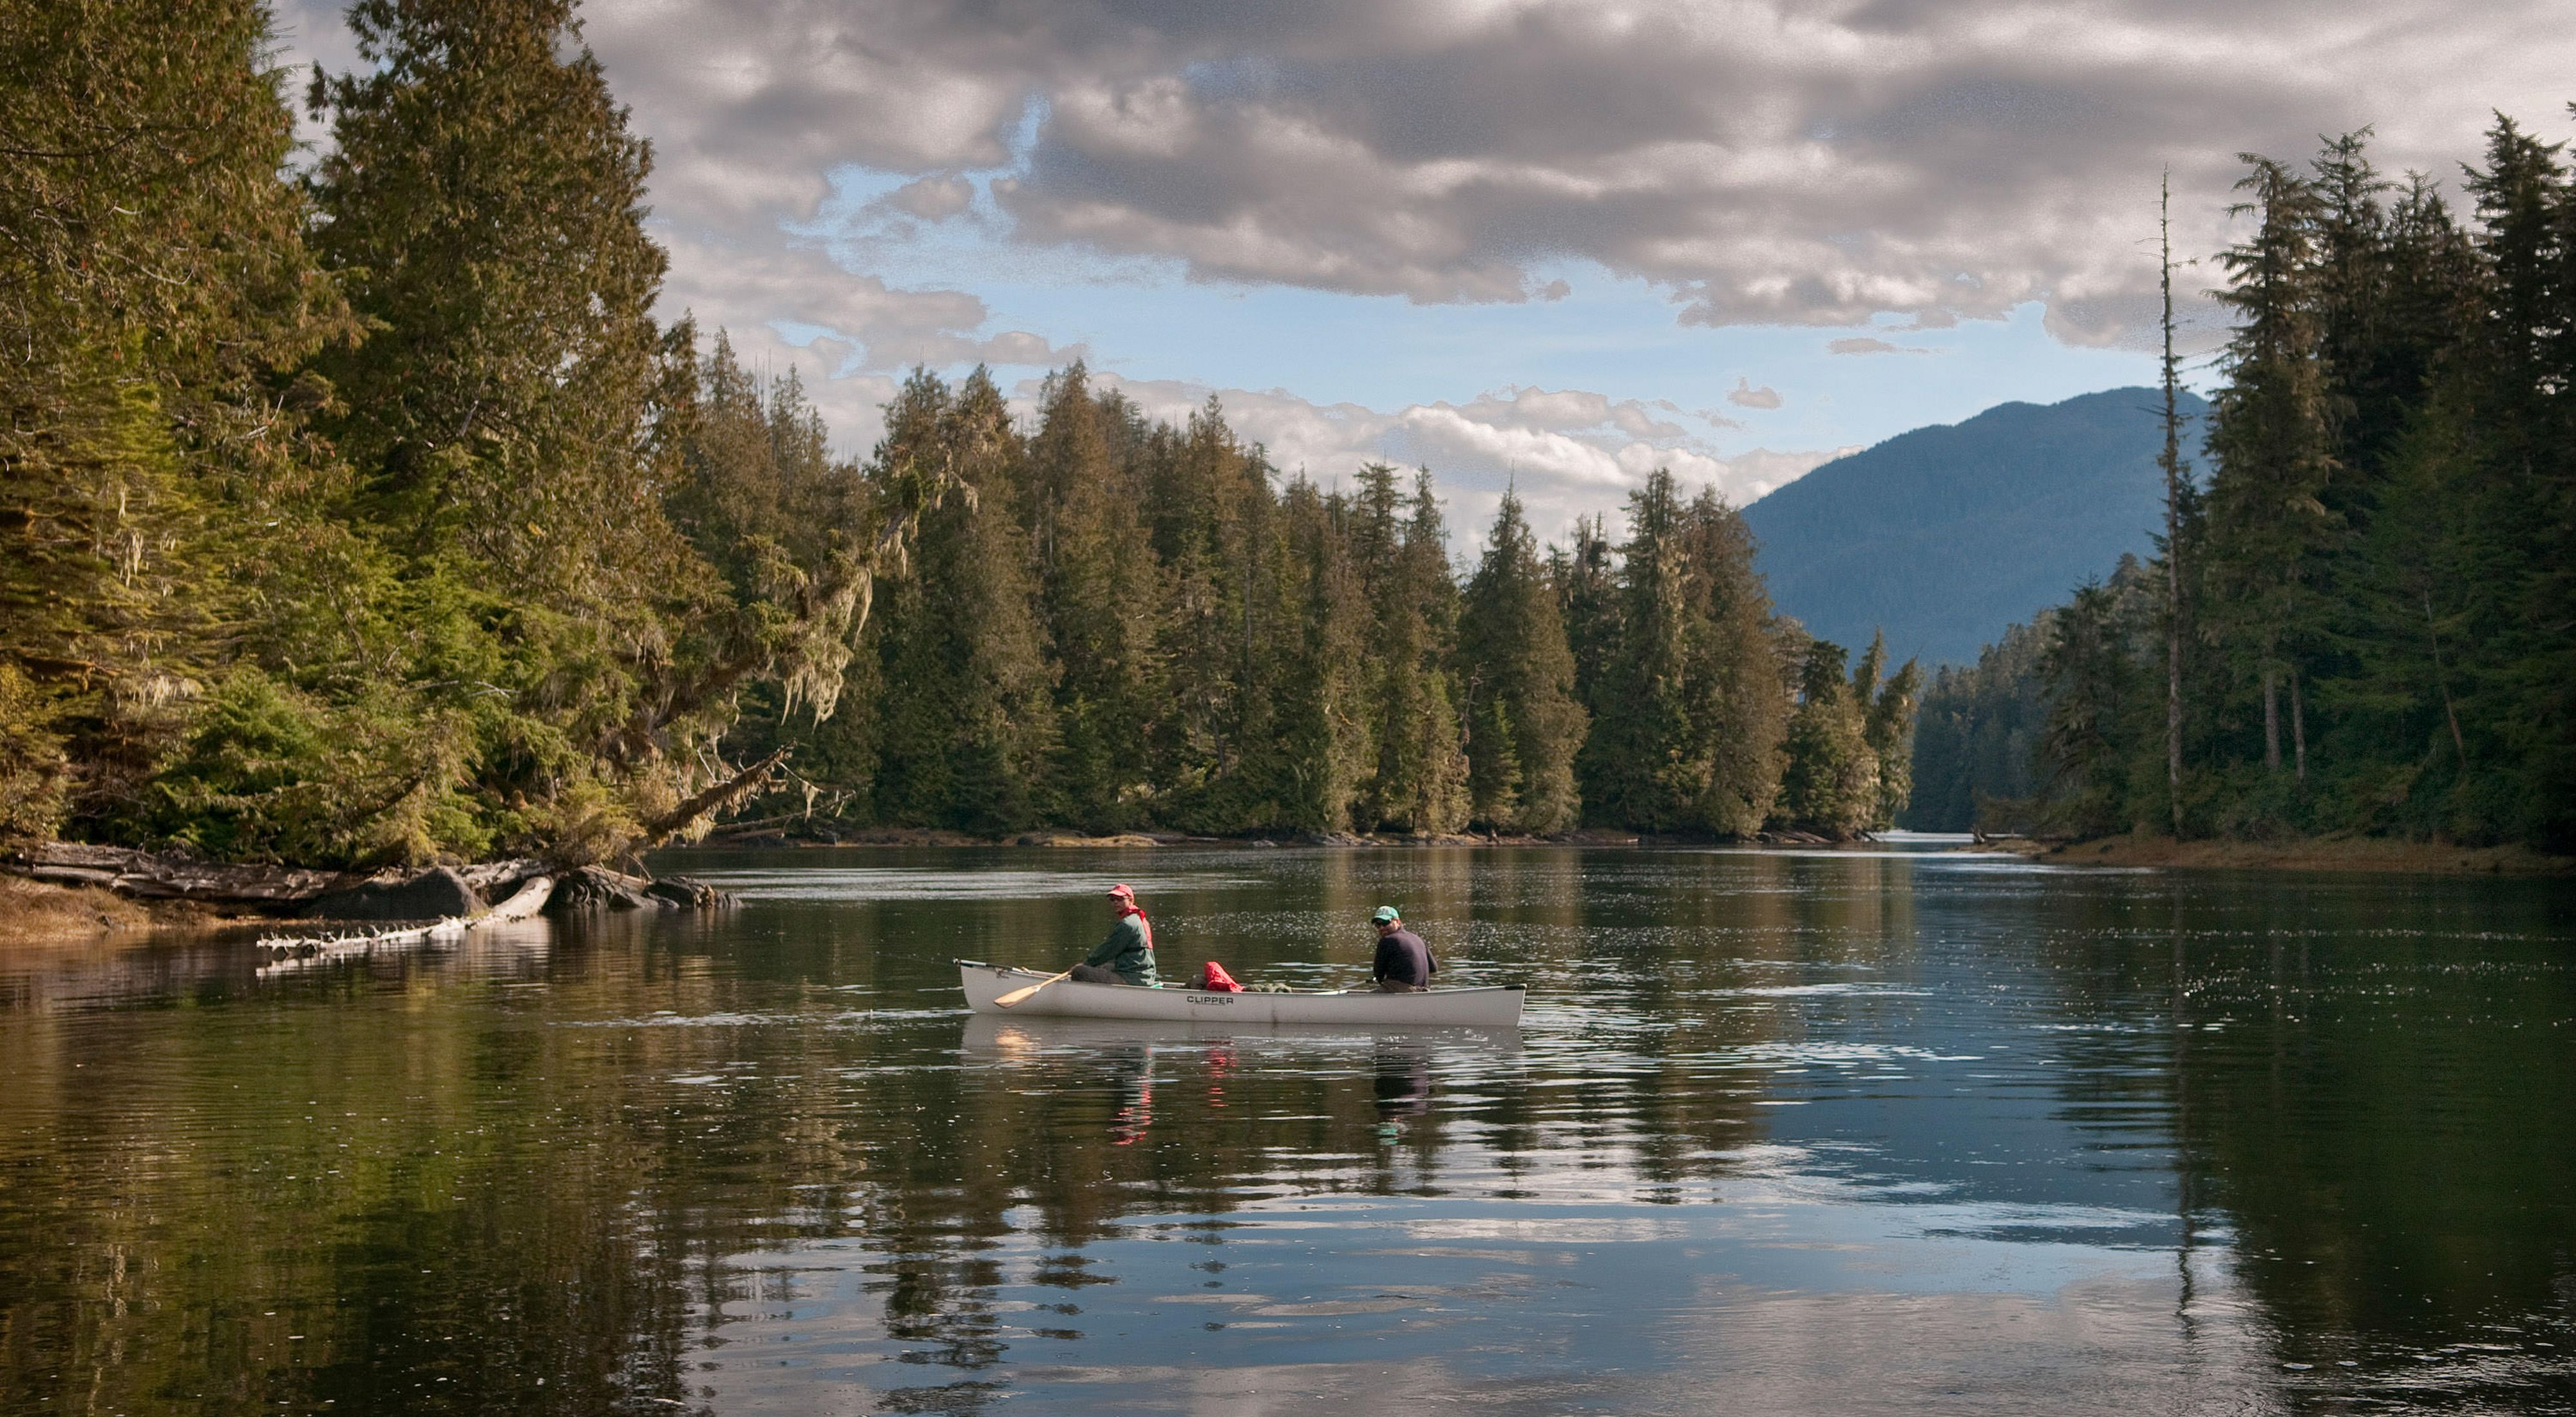 The Koeye River, which flows through the Great Bear Rainforest on the remote mainland central coast of British Columbia about 30 nautical miles south of Bella Bella, Canada.